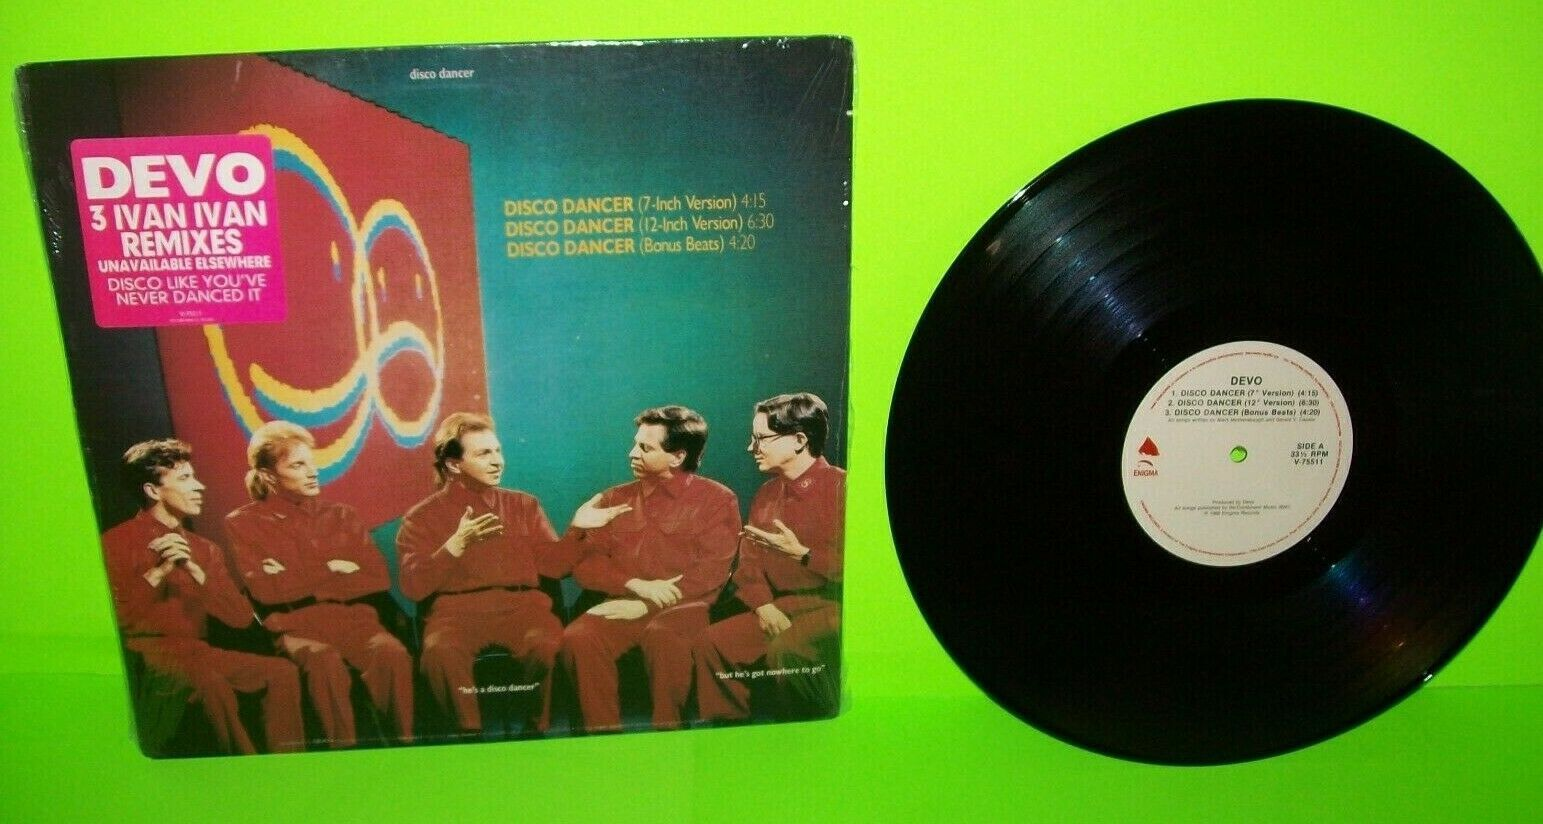 Devo Disco Dancer Vinyl 12 Ep Record Synth Pop New Wave Nm 1988 Hype Sticker Synth Pop Used Vinyl Electronic Music